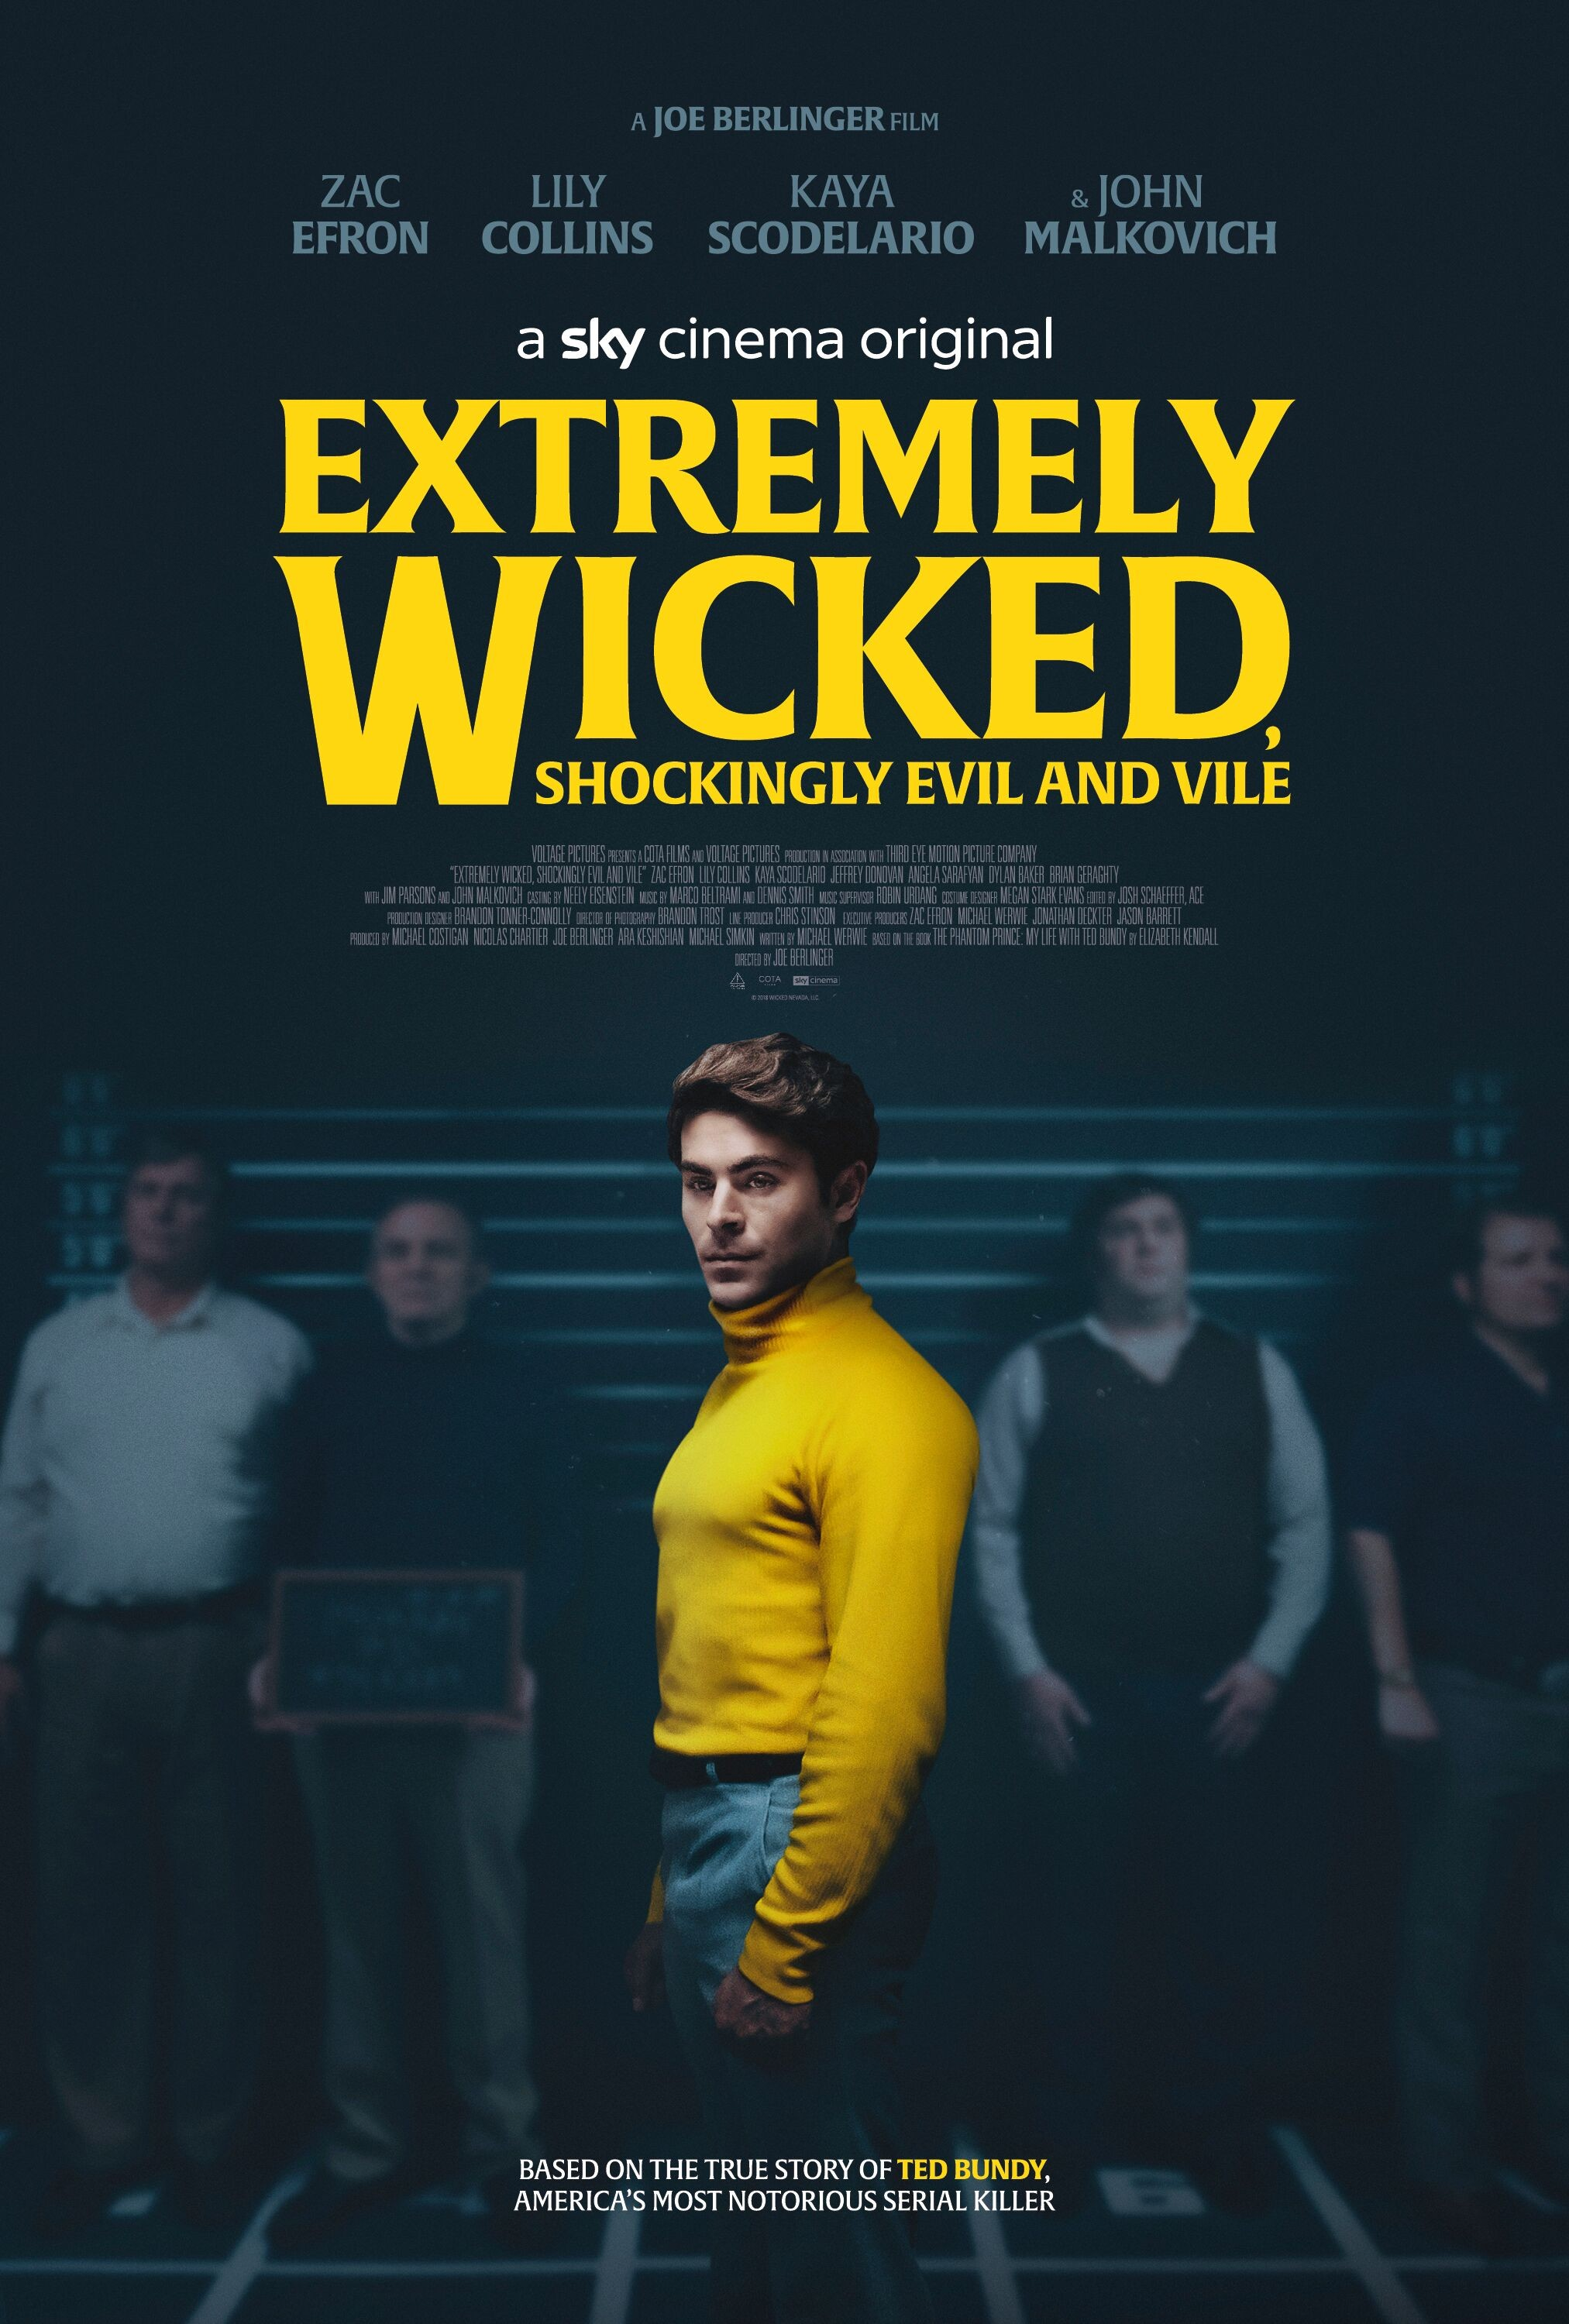 EXTREMELY WICKED, SHOCKINGLY EVIL AND VILE [New Release]